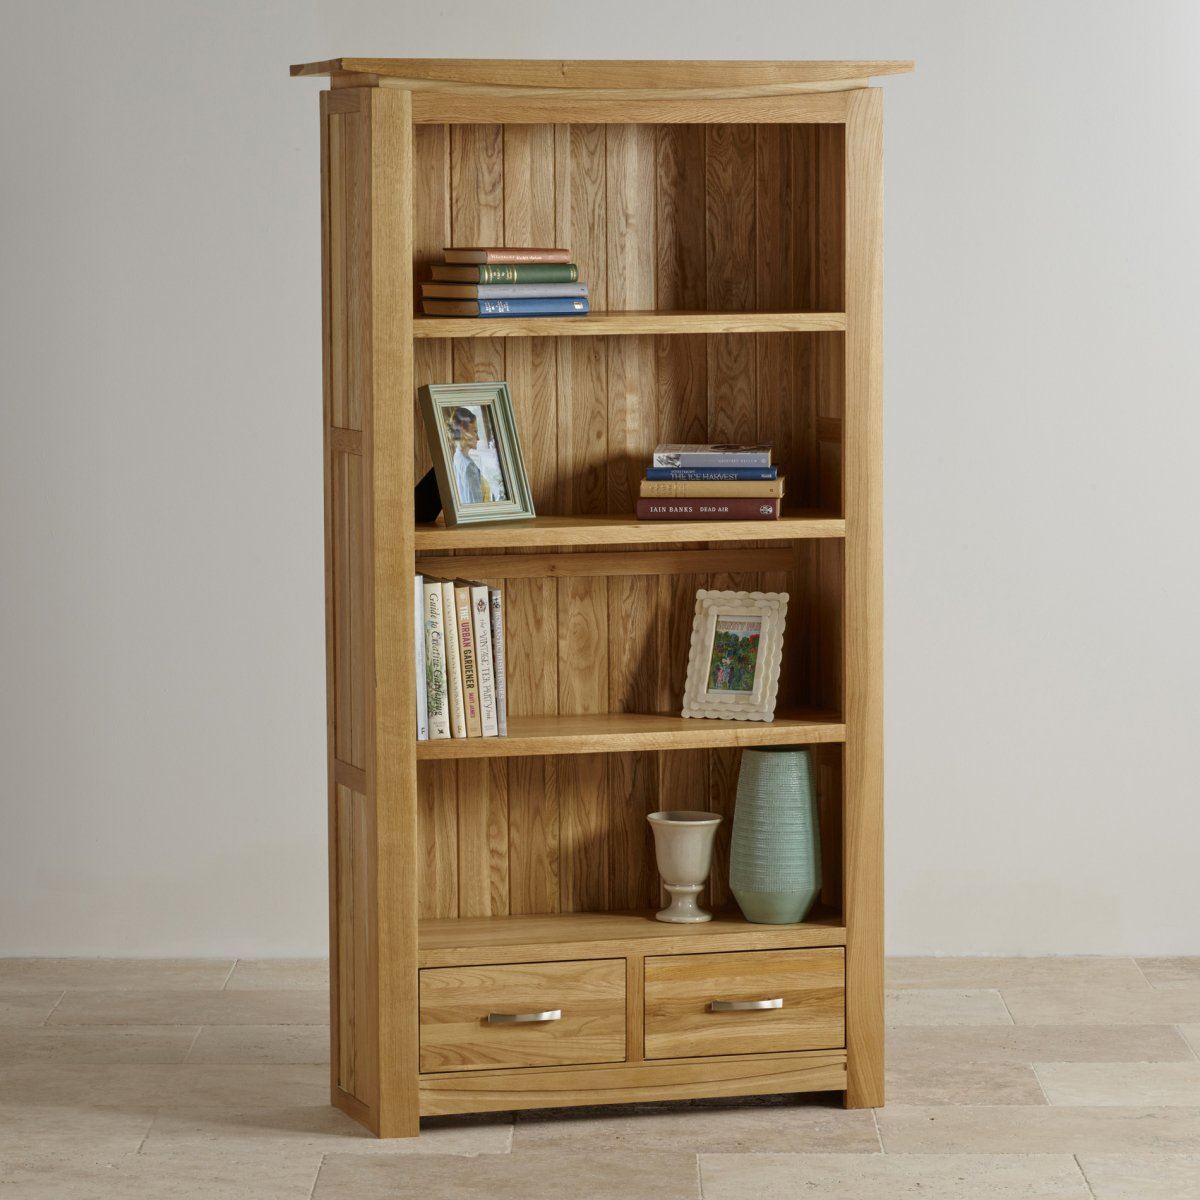 Living Room With Bookshelf: Tokyo Natural Solid Oak Bookcase